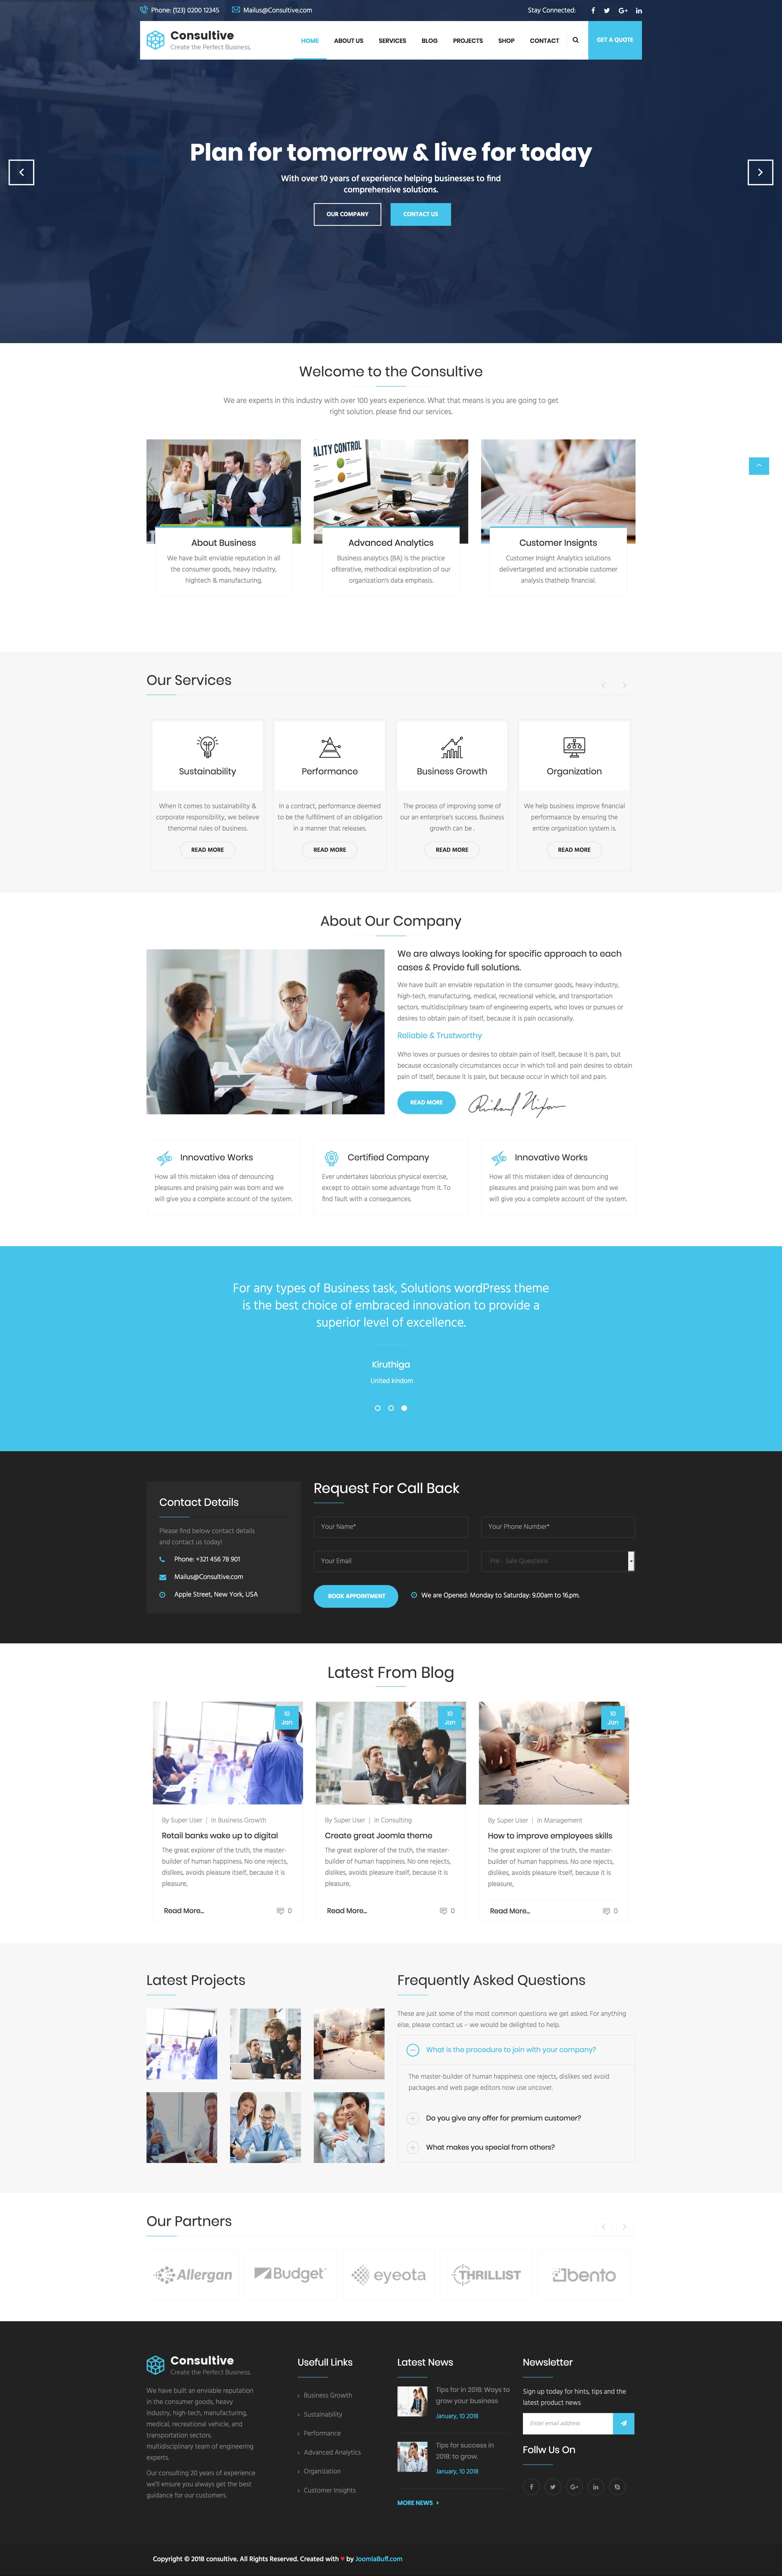 Consultive - Finance & Business Consulting Joomla Template